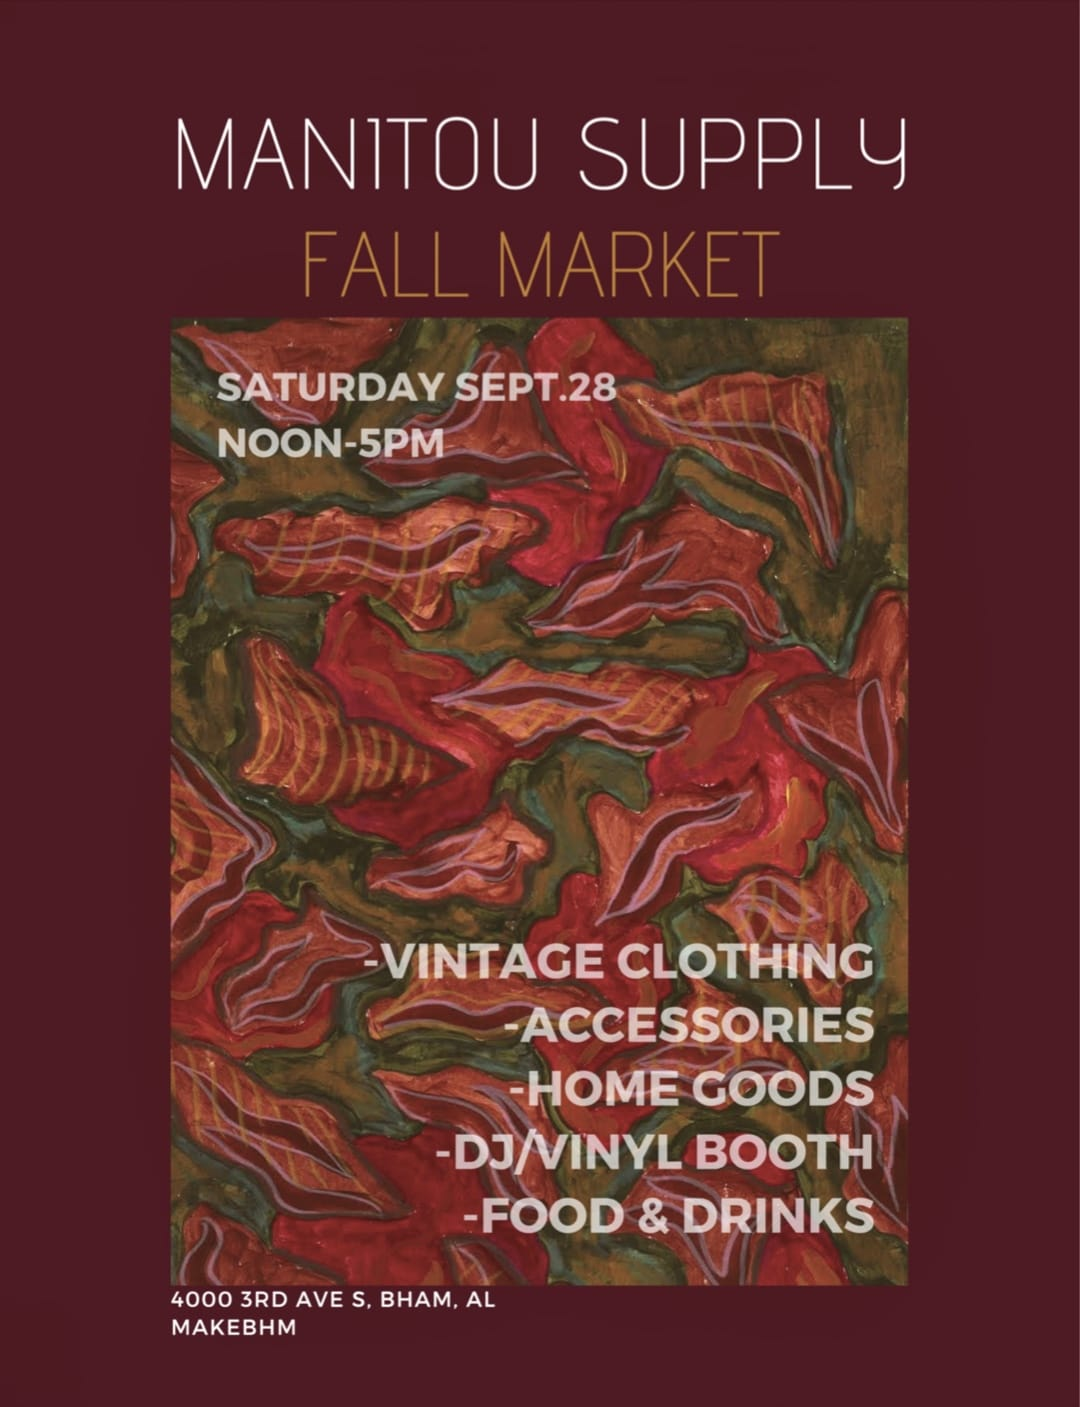 Manitou Supply Fall Market